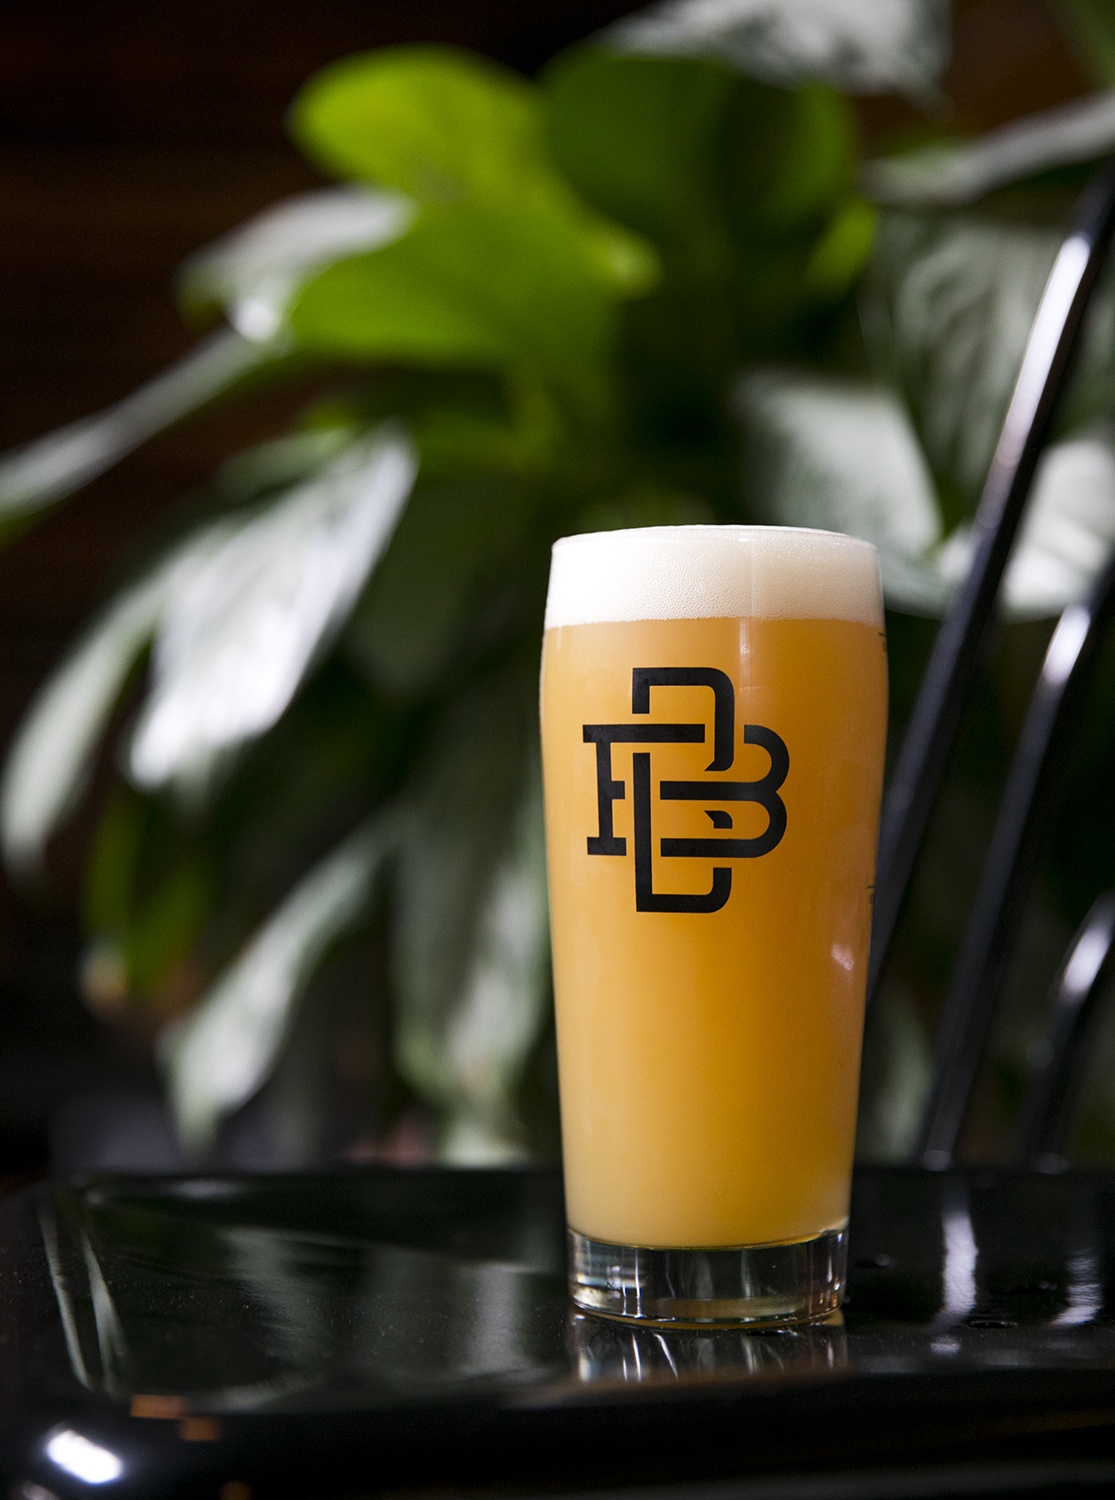 Boomtown Brewery Makes it Rain Candy With New Hazy IPA